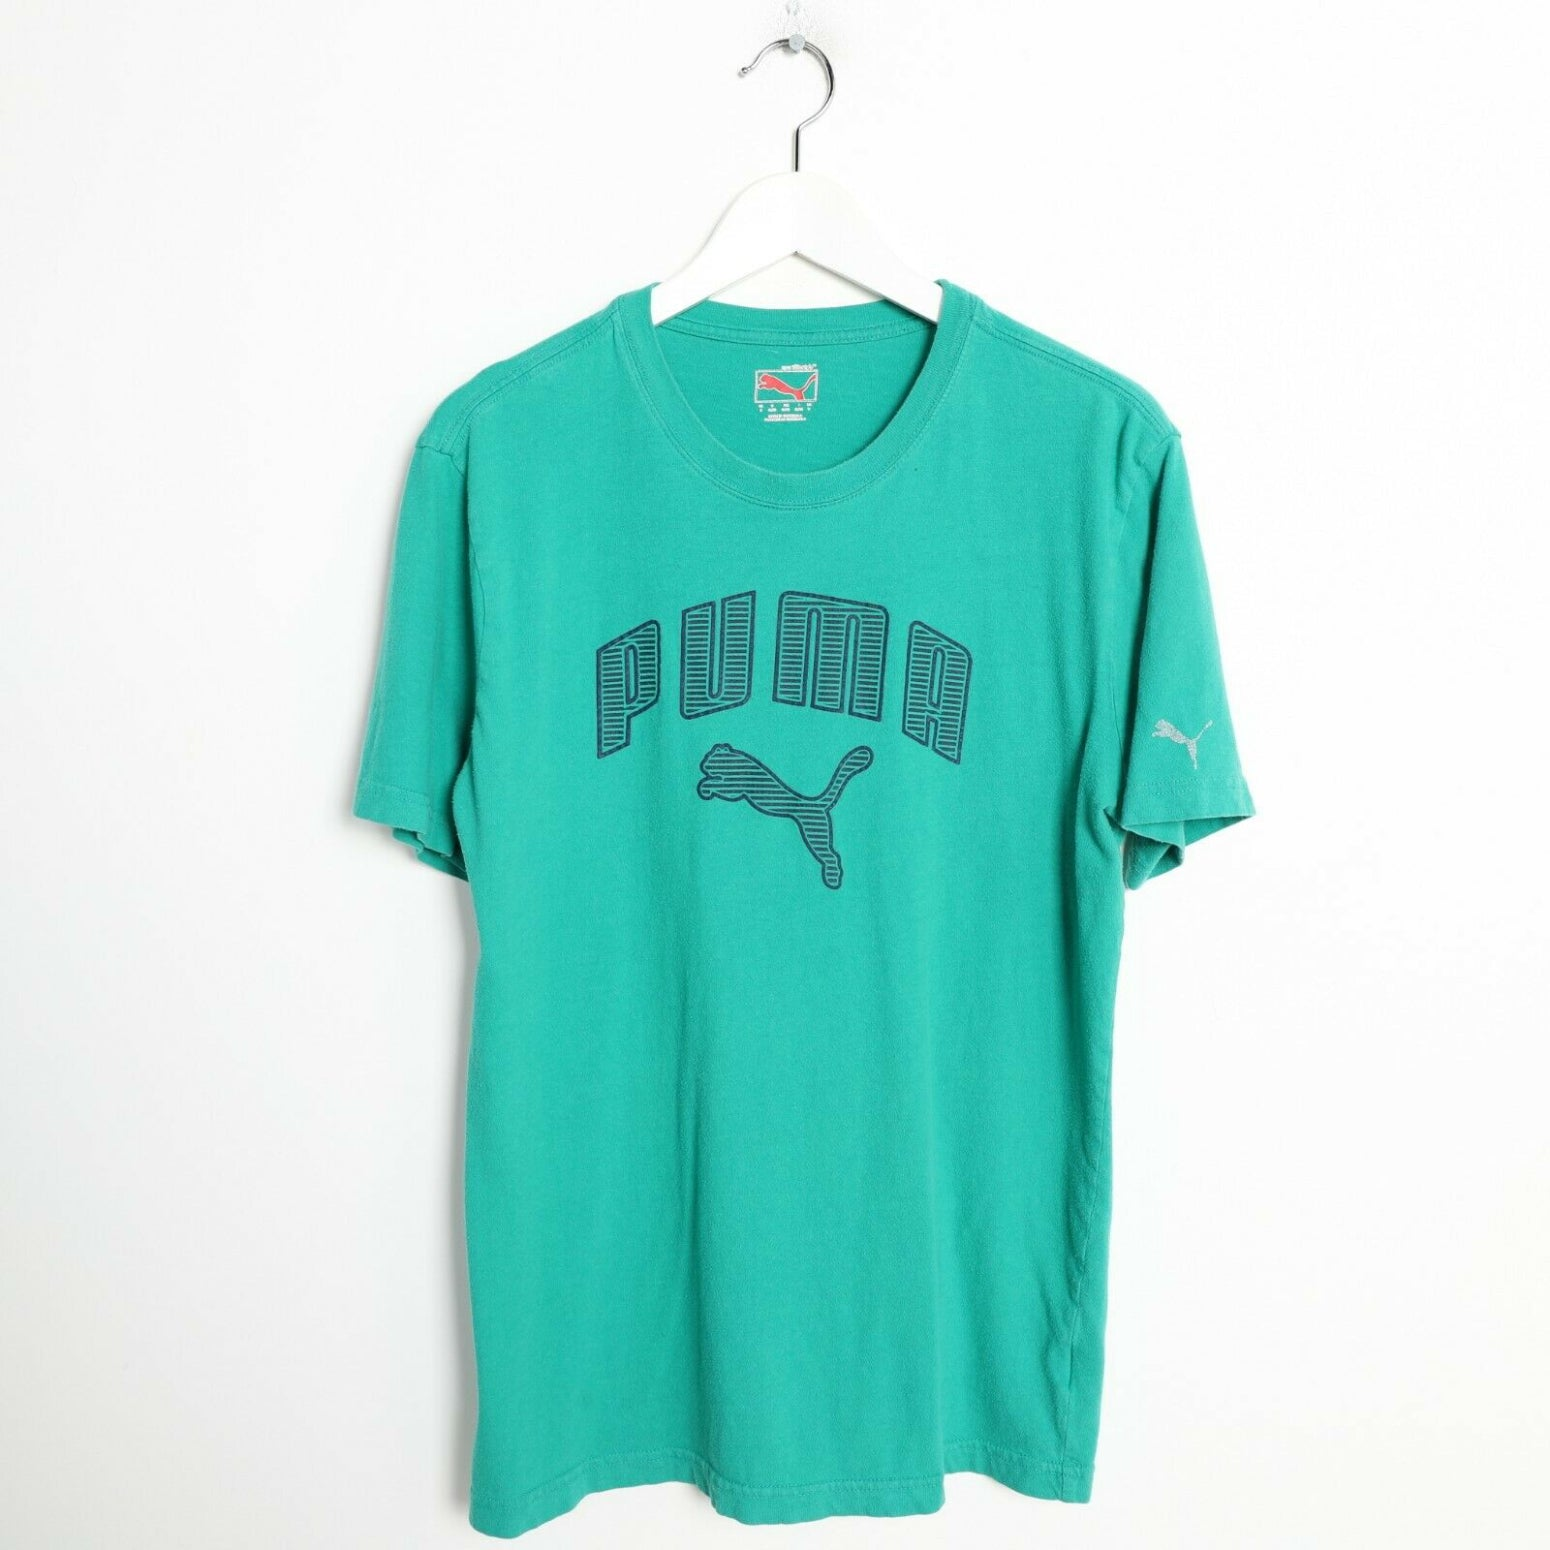 Vintage PUMA Spell Out Graphic T Shirt Tee Green Medium M